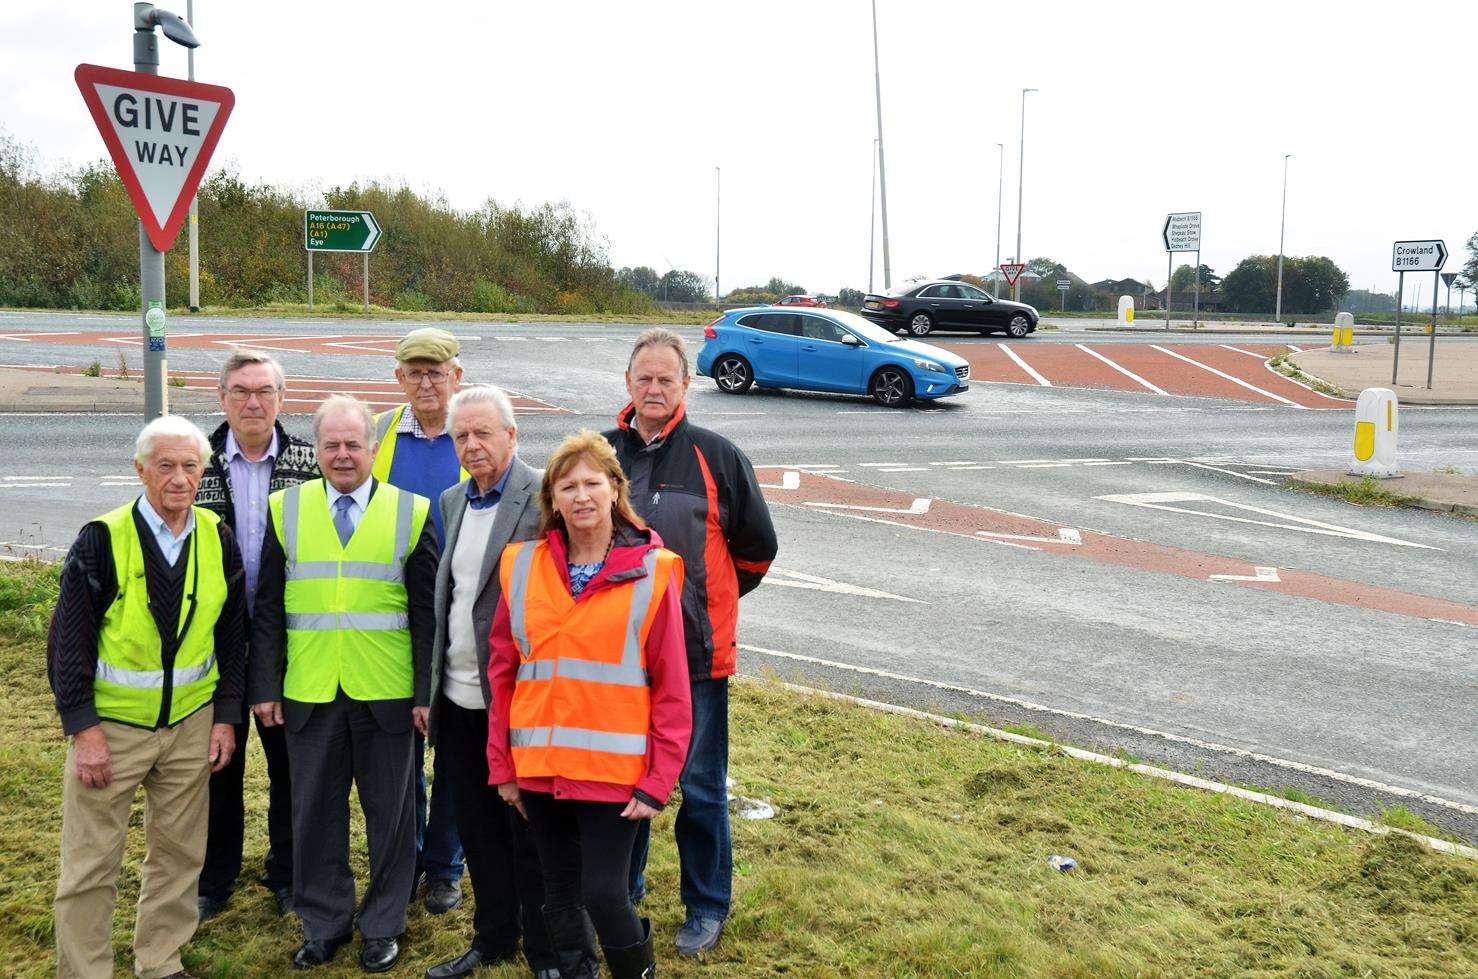 Group concerned about A16/B1166 junction at Crowland (also concerned about B1166 road surface in two separate places) Back Philip Green, Michael Atkinson, David Barfoot, front Bryan Alcock, Nigel Pepper, David Ringham, Angela Harrison (4853741)